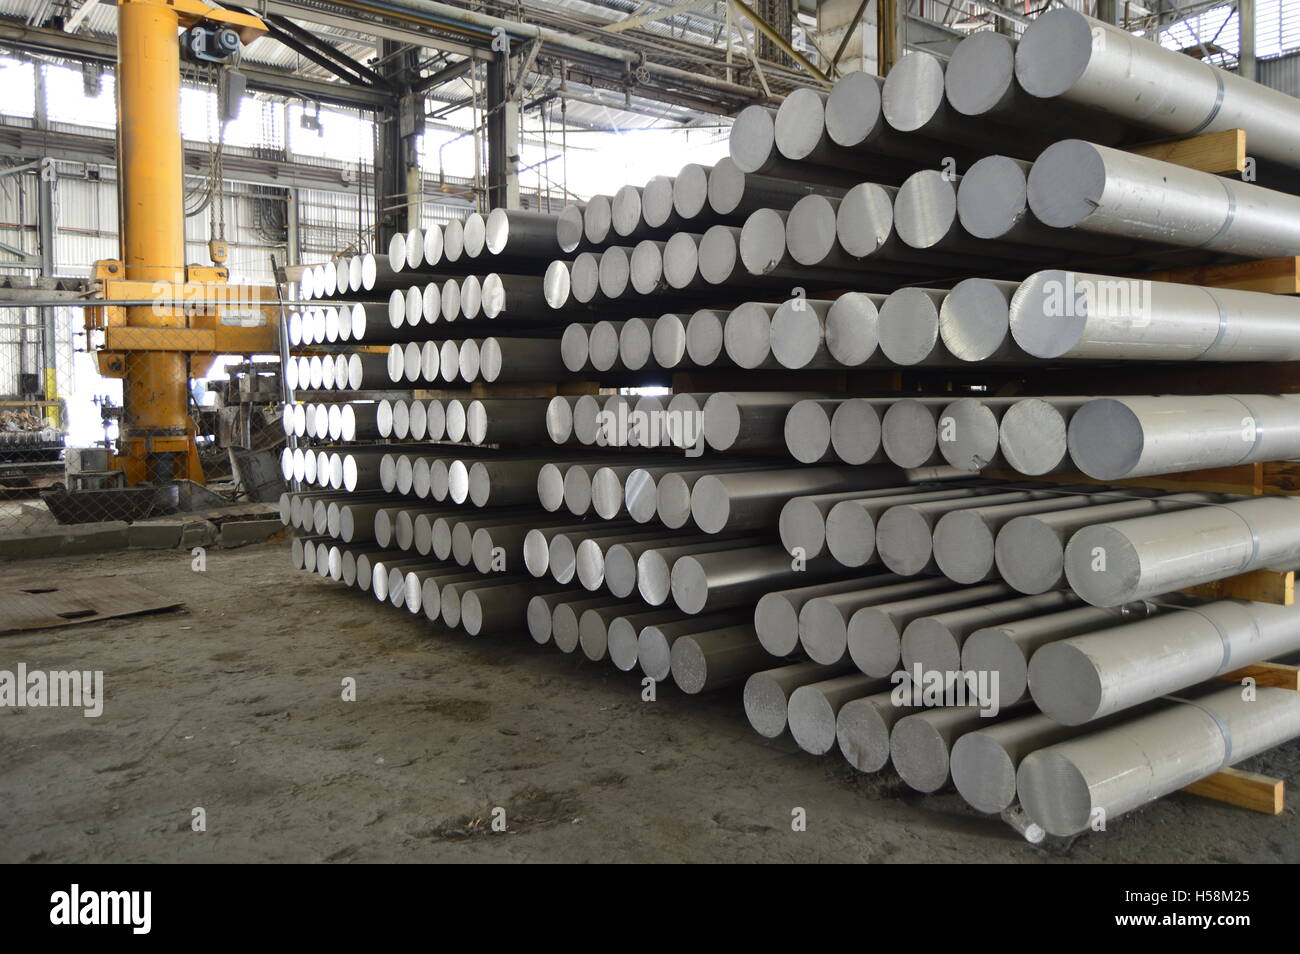 Primary aluminum metal cylinders employed in the extrusion